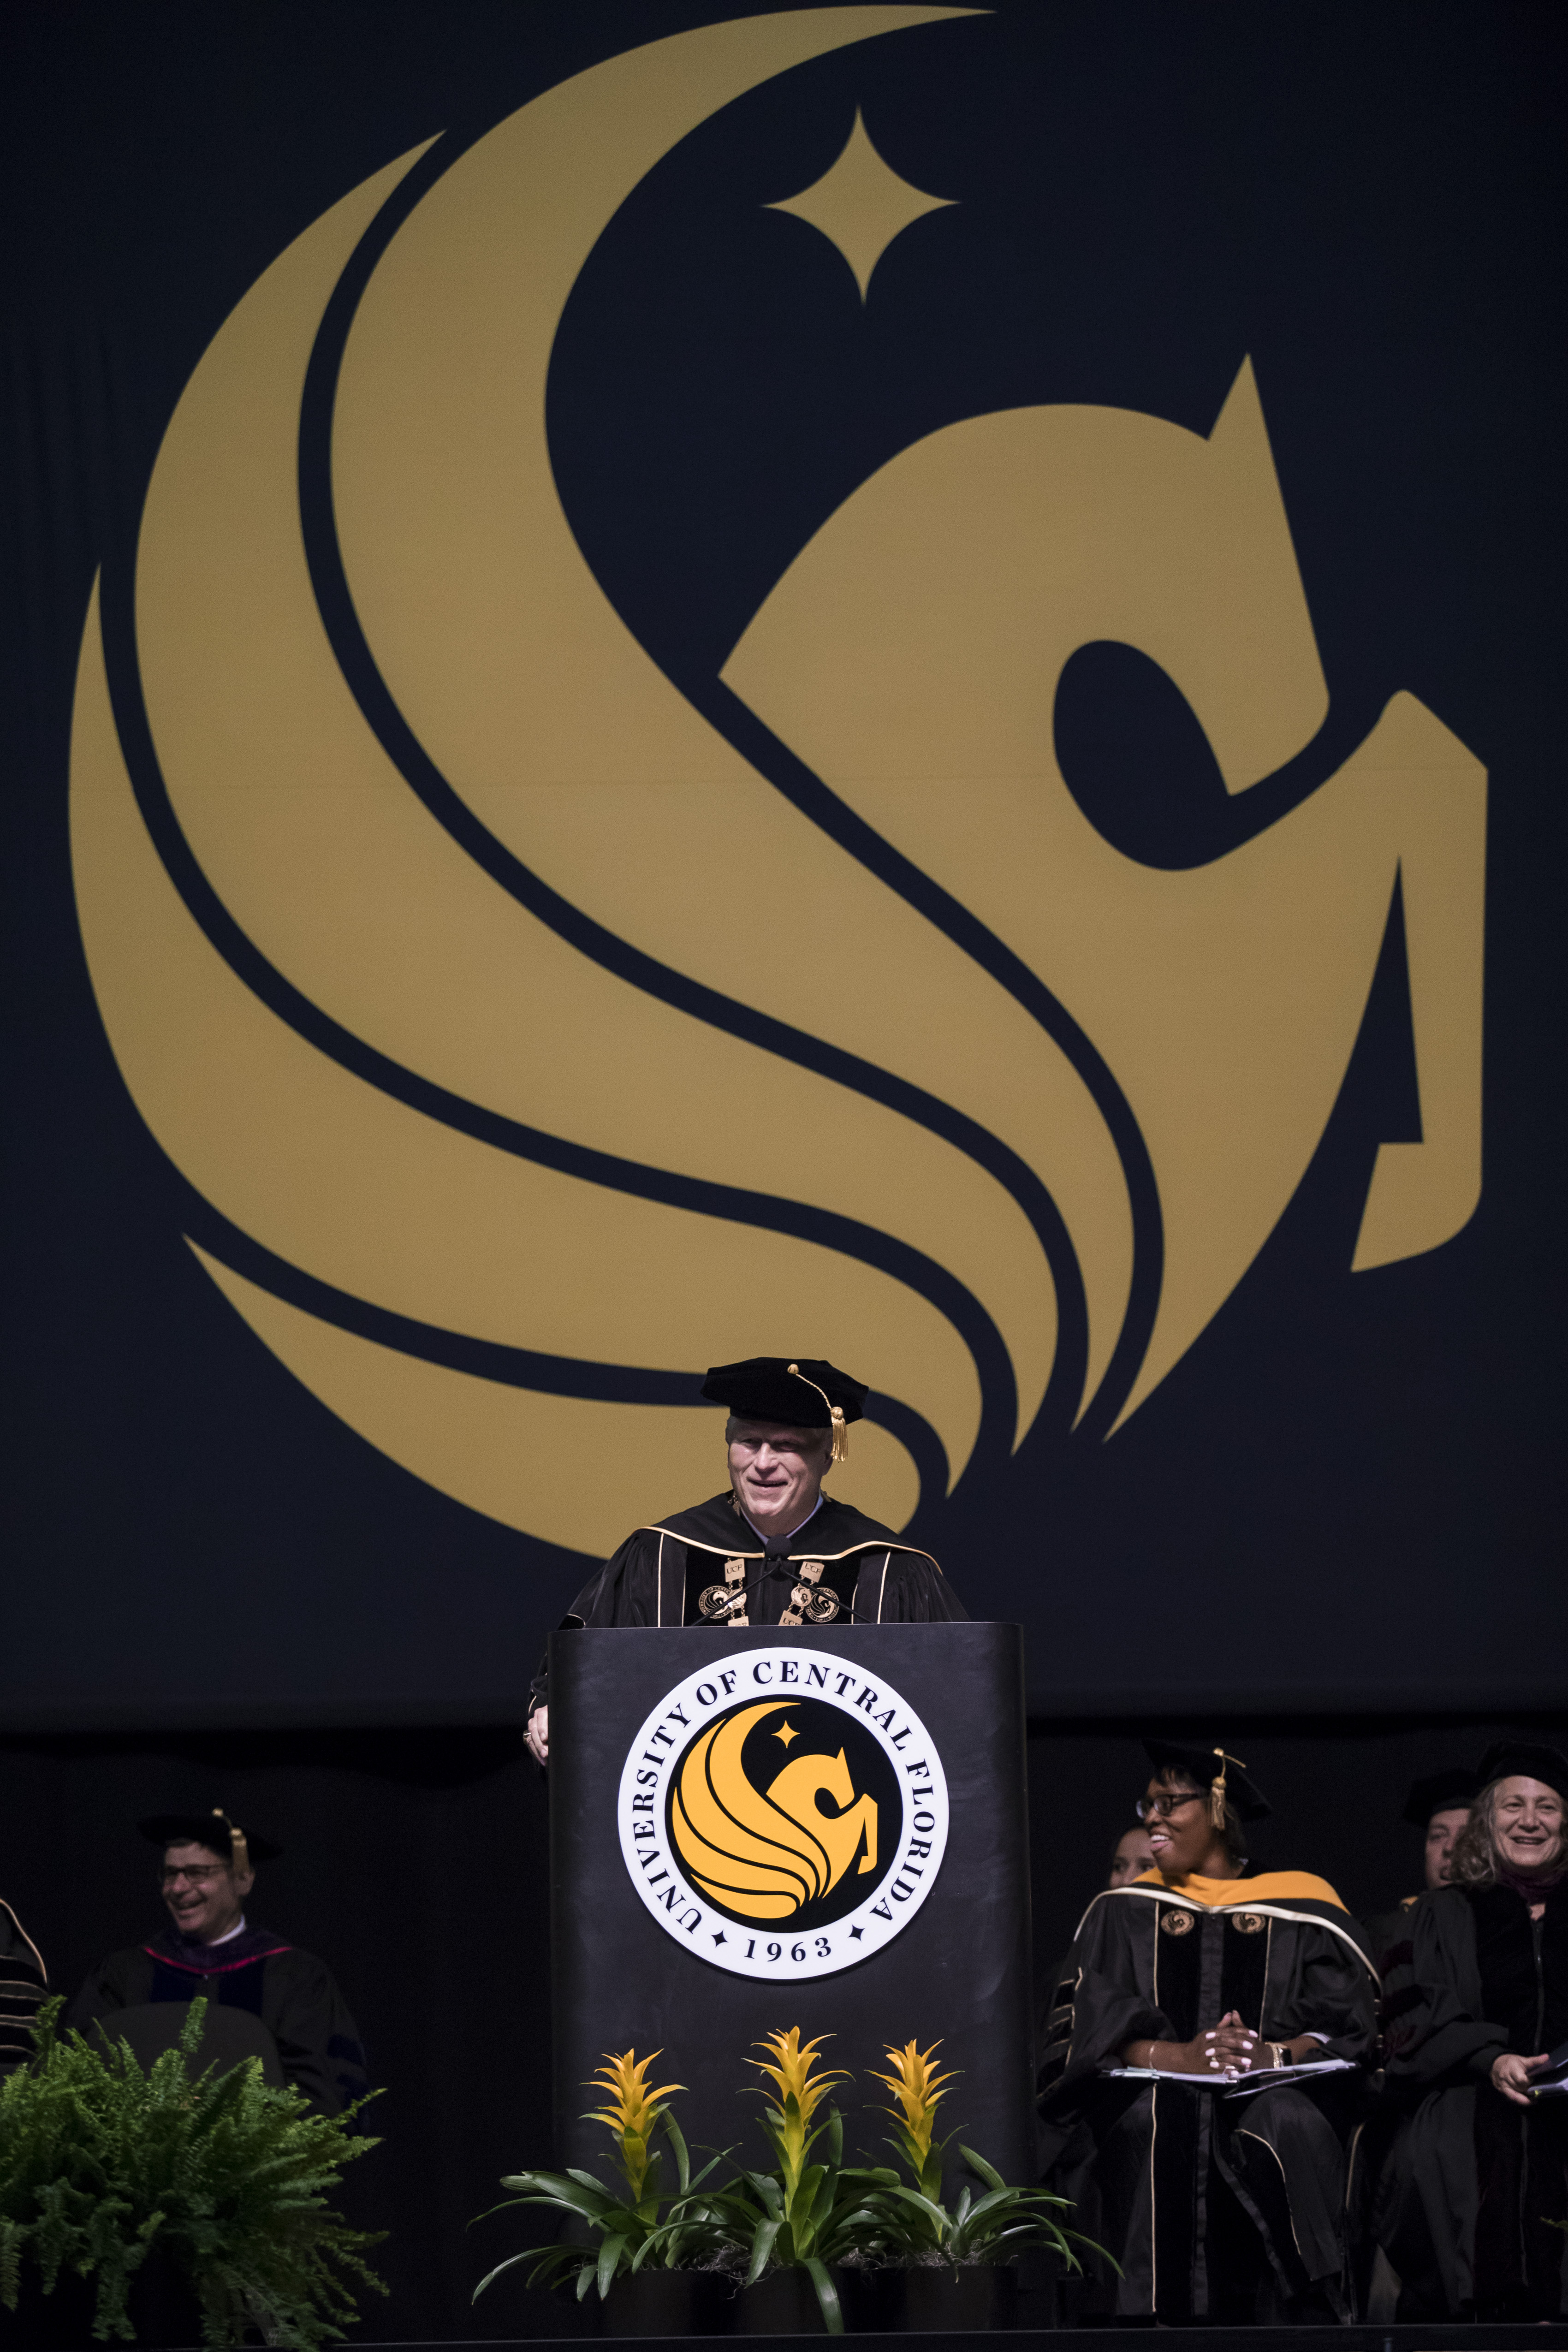 John C. Hitt speaks at a podium while wearing regalia as a yellow Pegasus symbol hangs behind him.